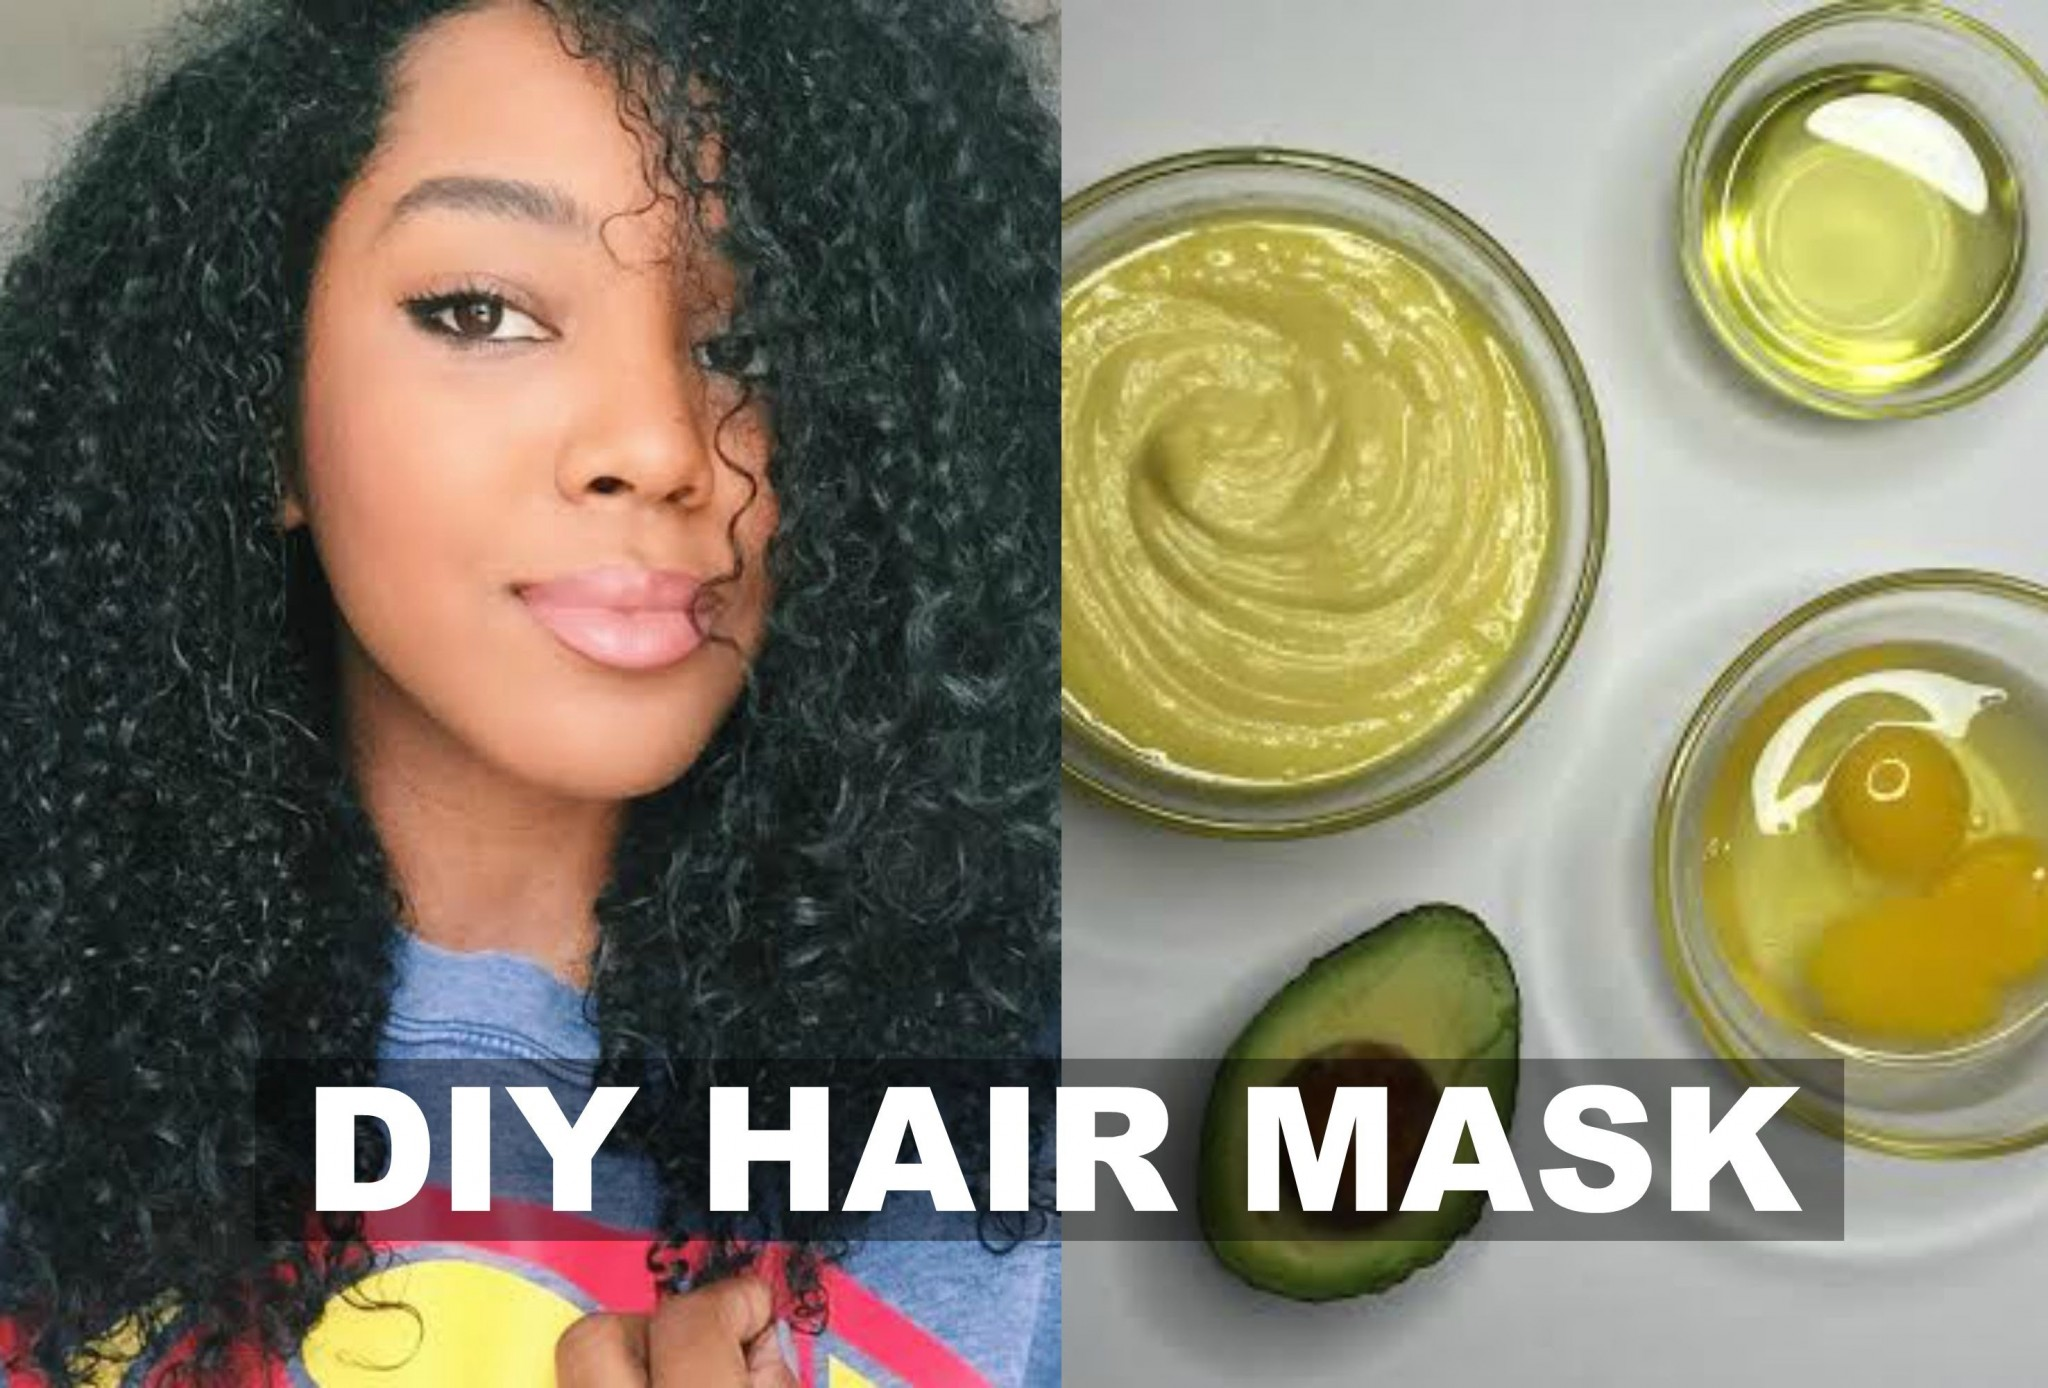 tips on how to get super healthy natural hair growth using an